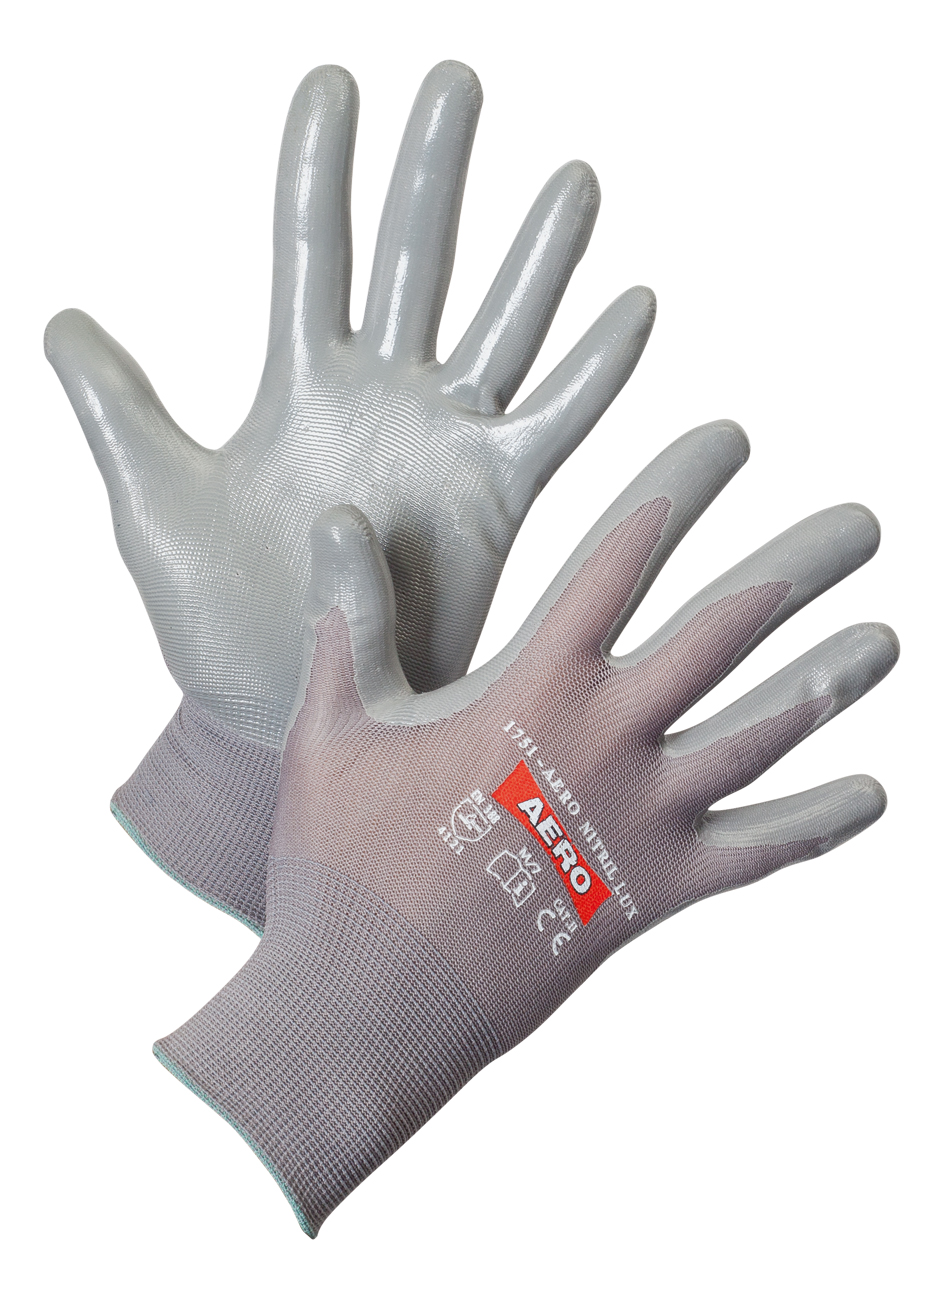 AERO Gloves NitroFlat 1751